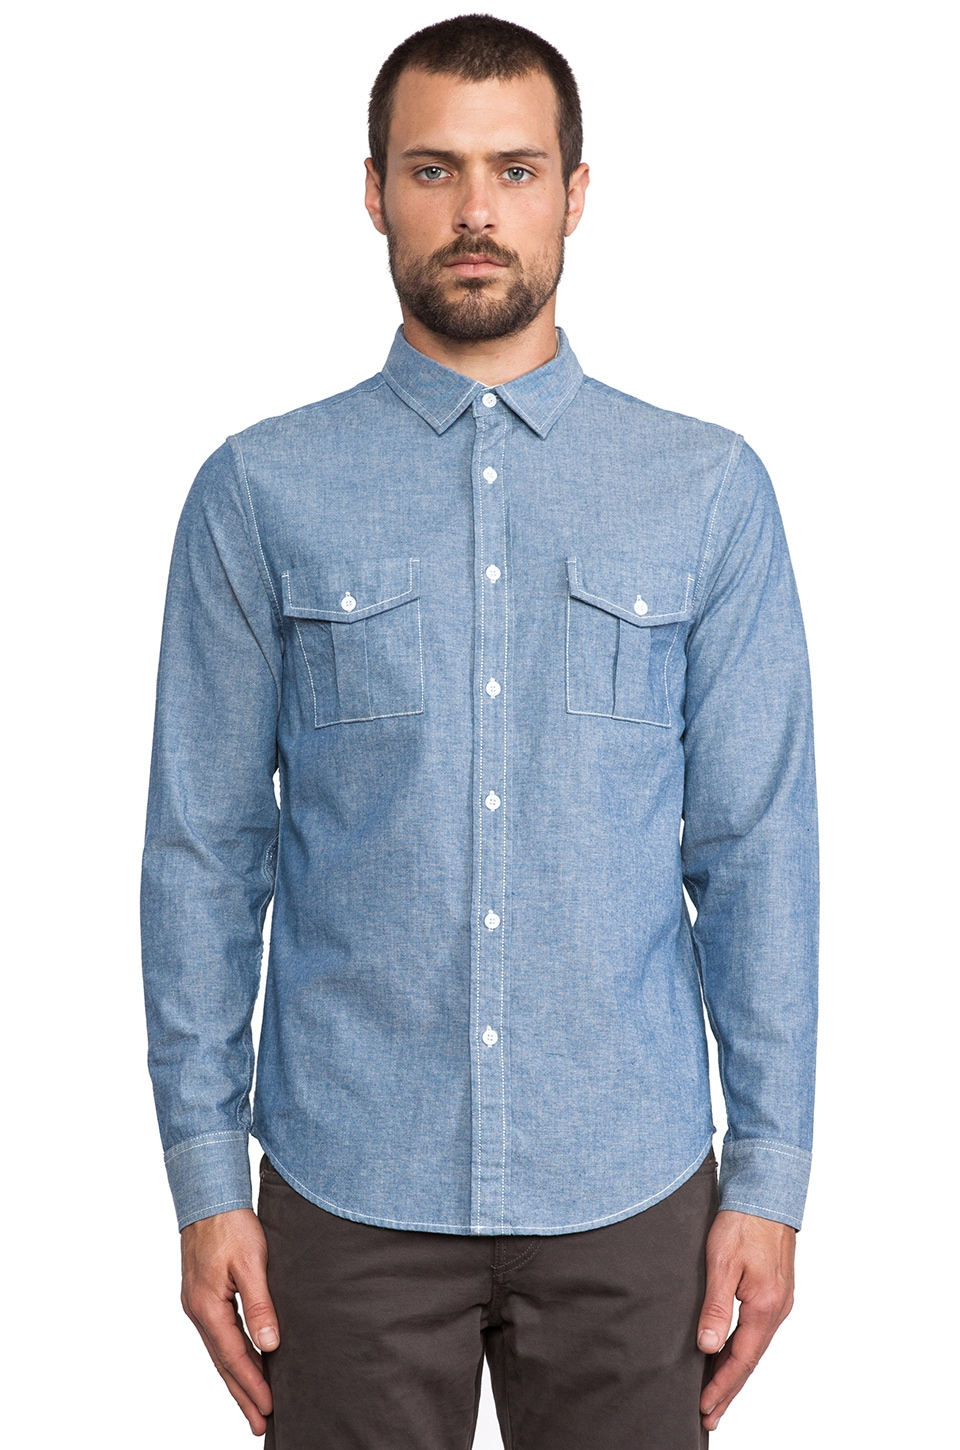 TOVAR Brody Shirt in Chambray